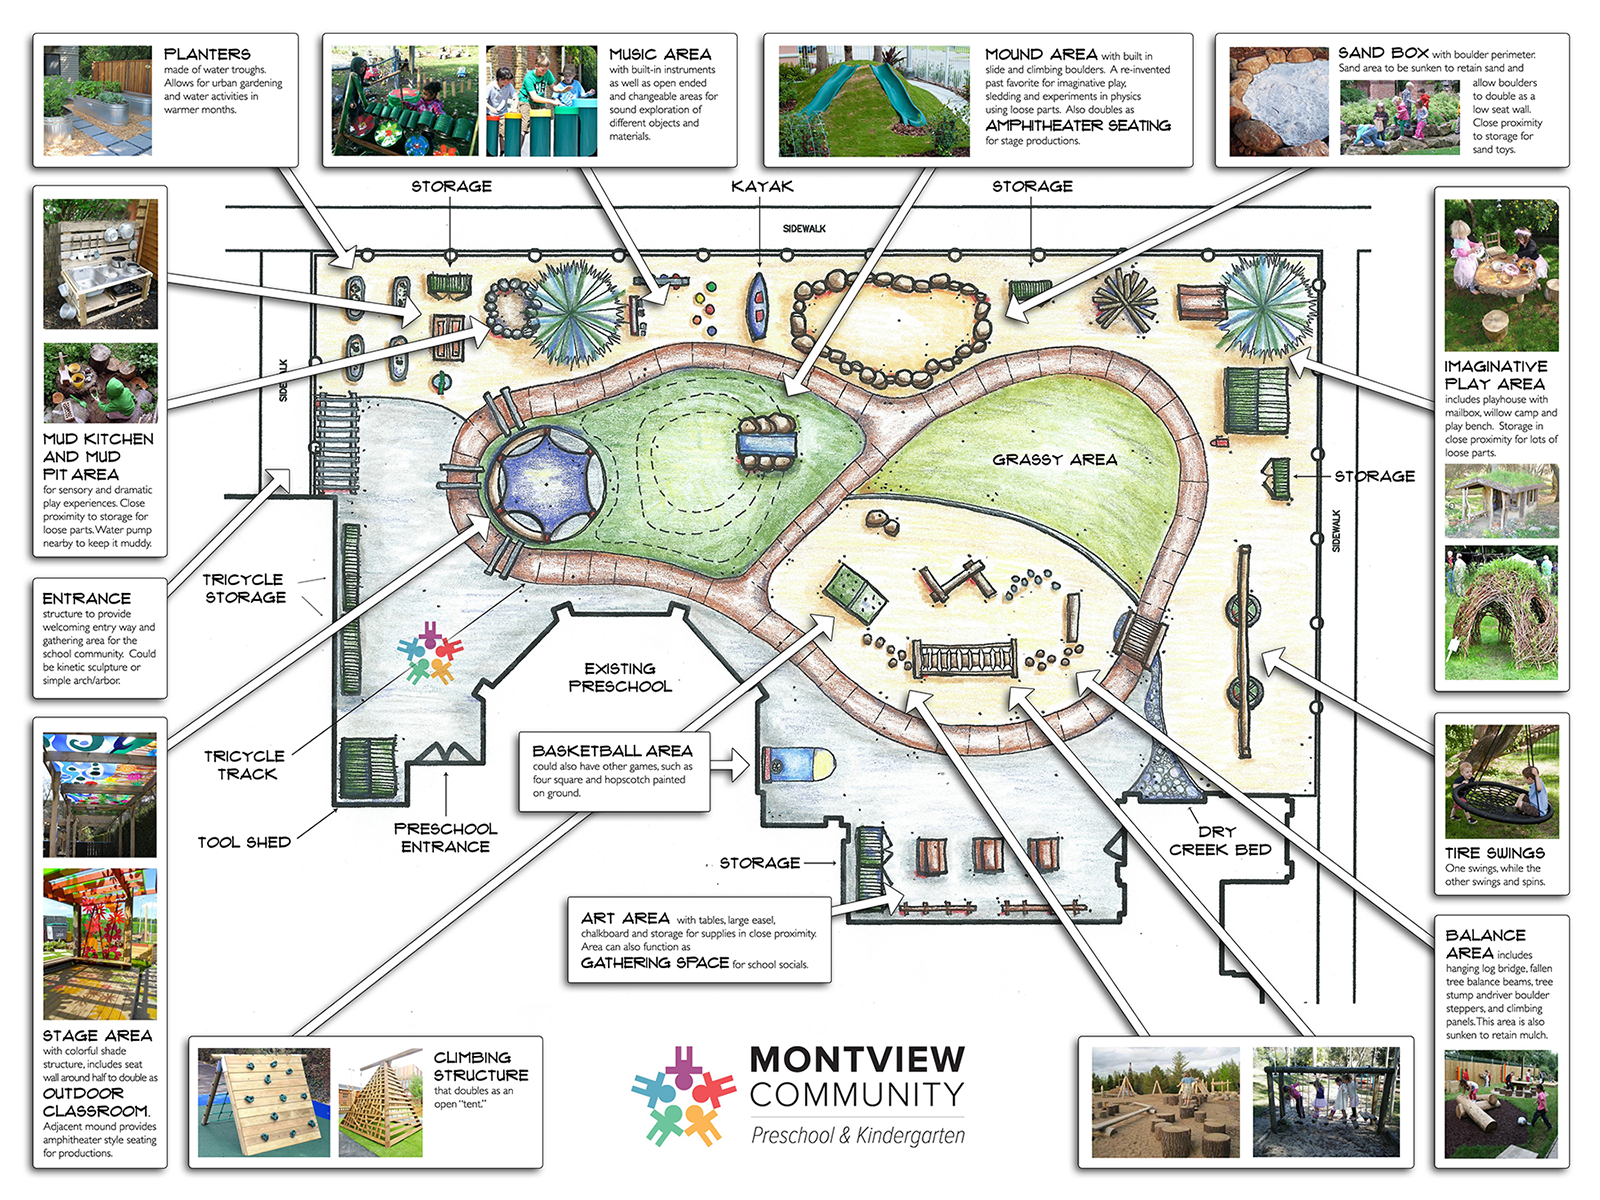 Playground Design Concept - Montview Preschool & Kindergarten